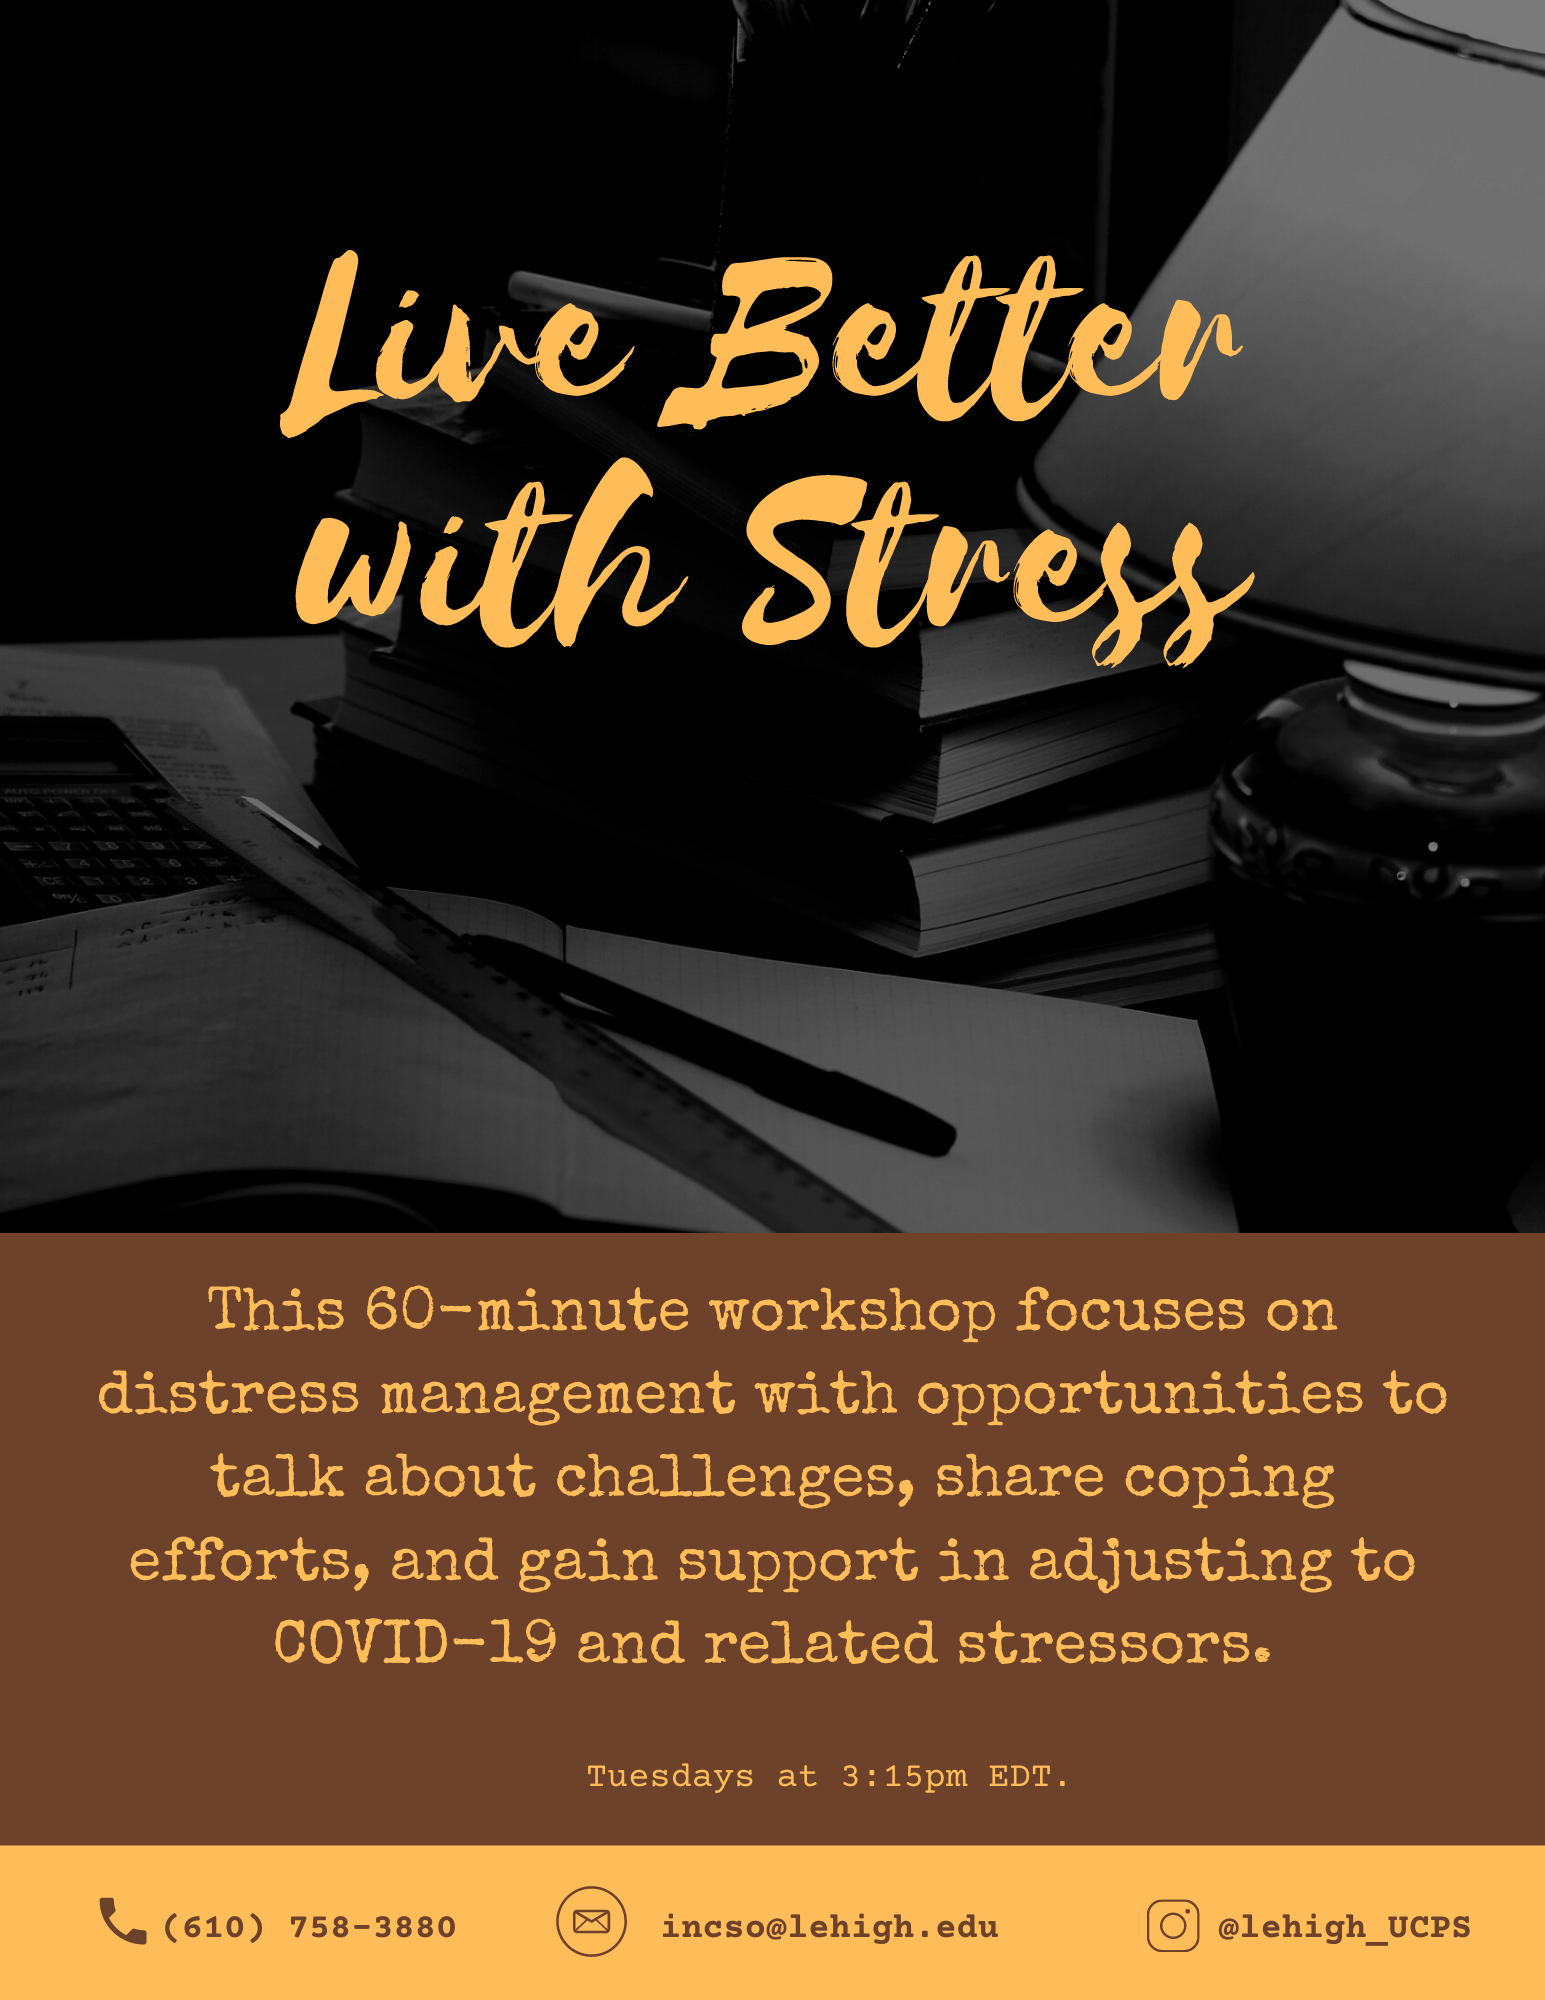 """Flyer titled """"Live Better with Stress"""" along with program description found below."""